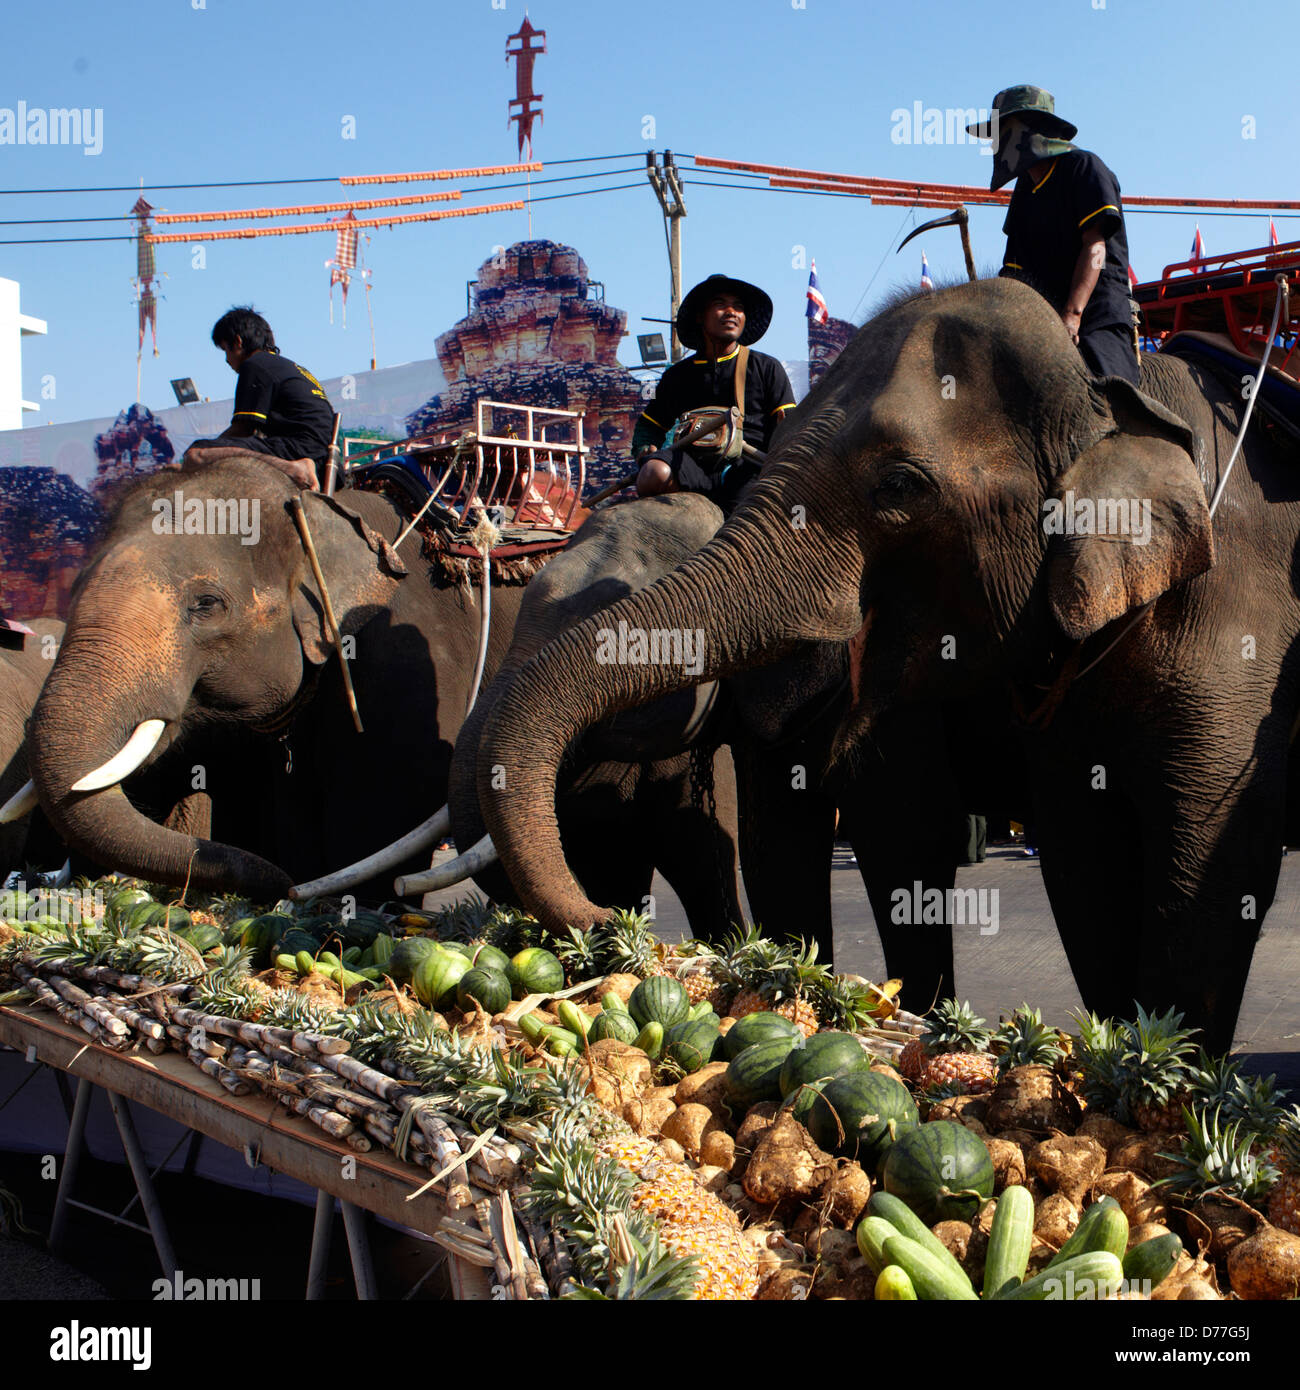 Thailand Surin city elephants in the street during the festival - Stock Image